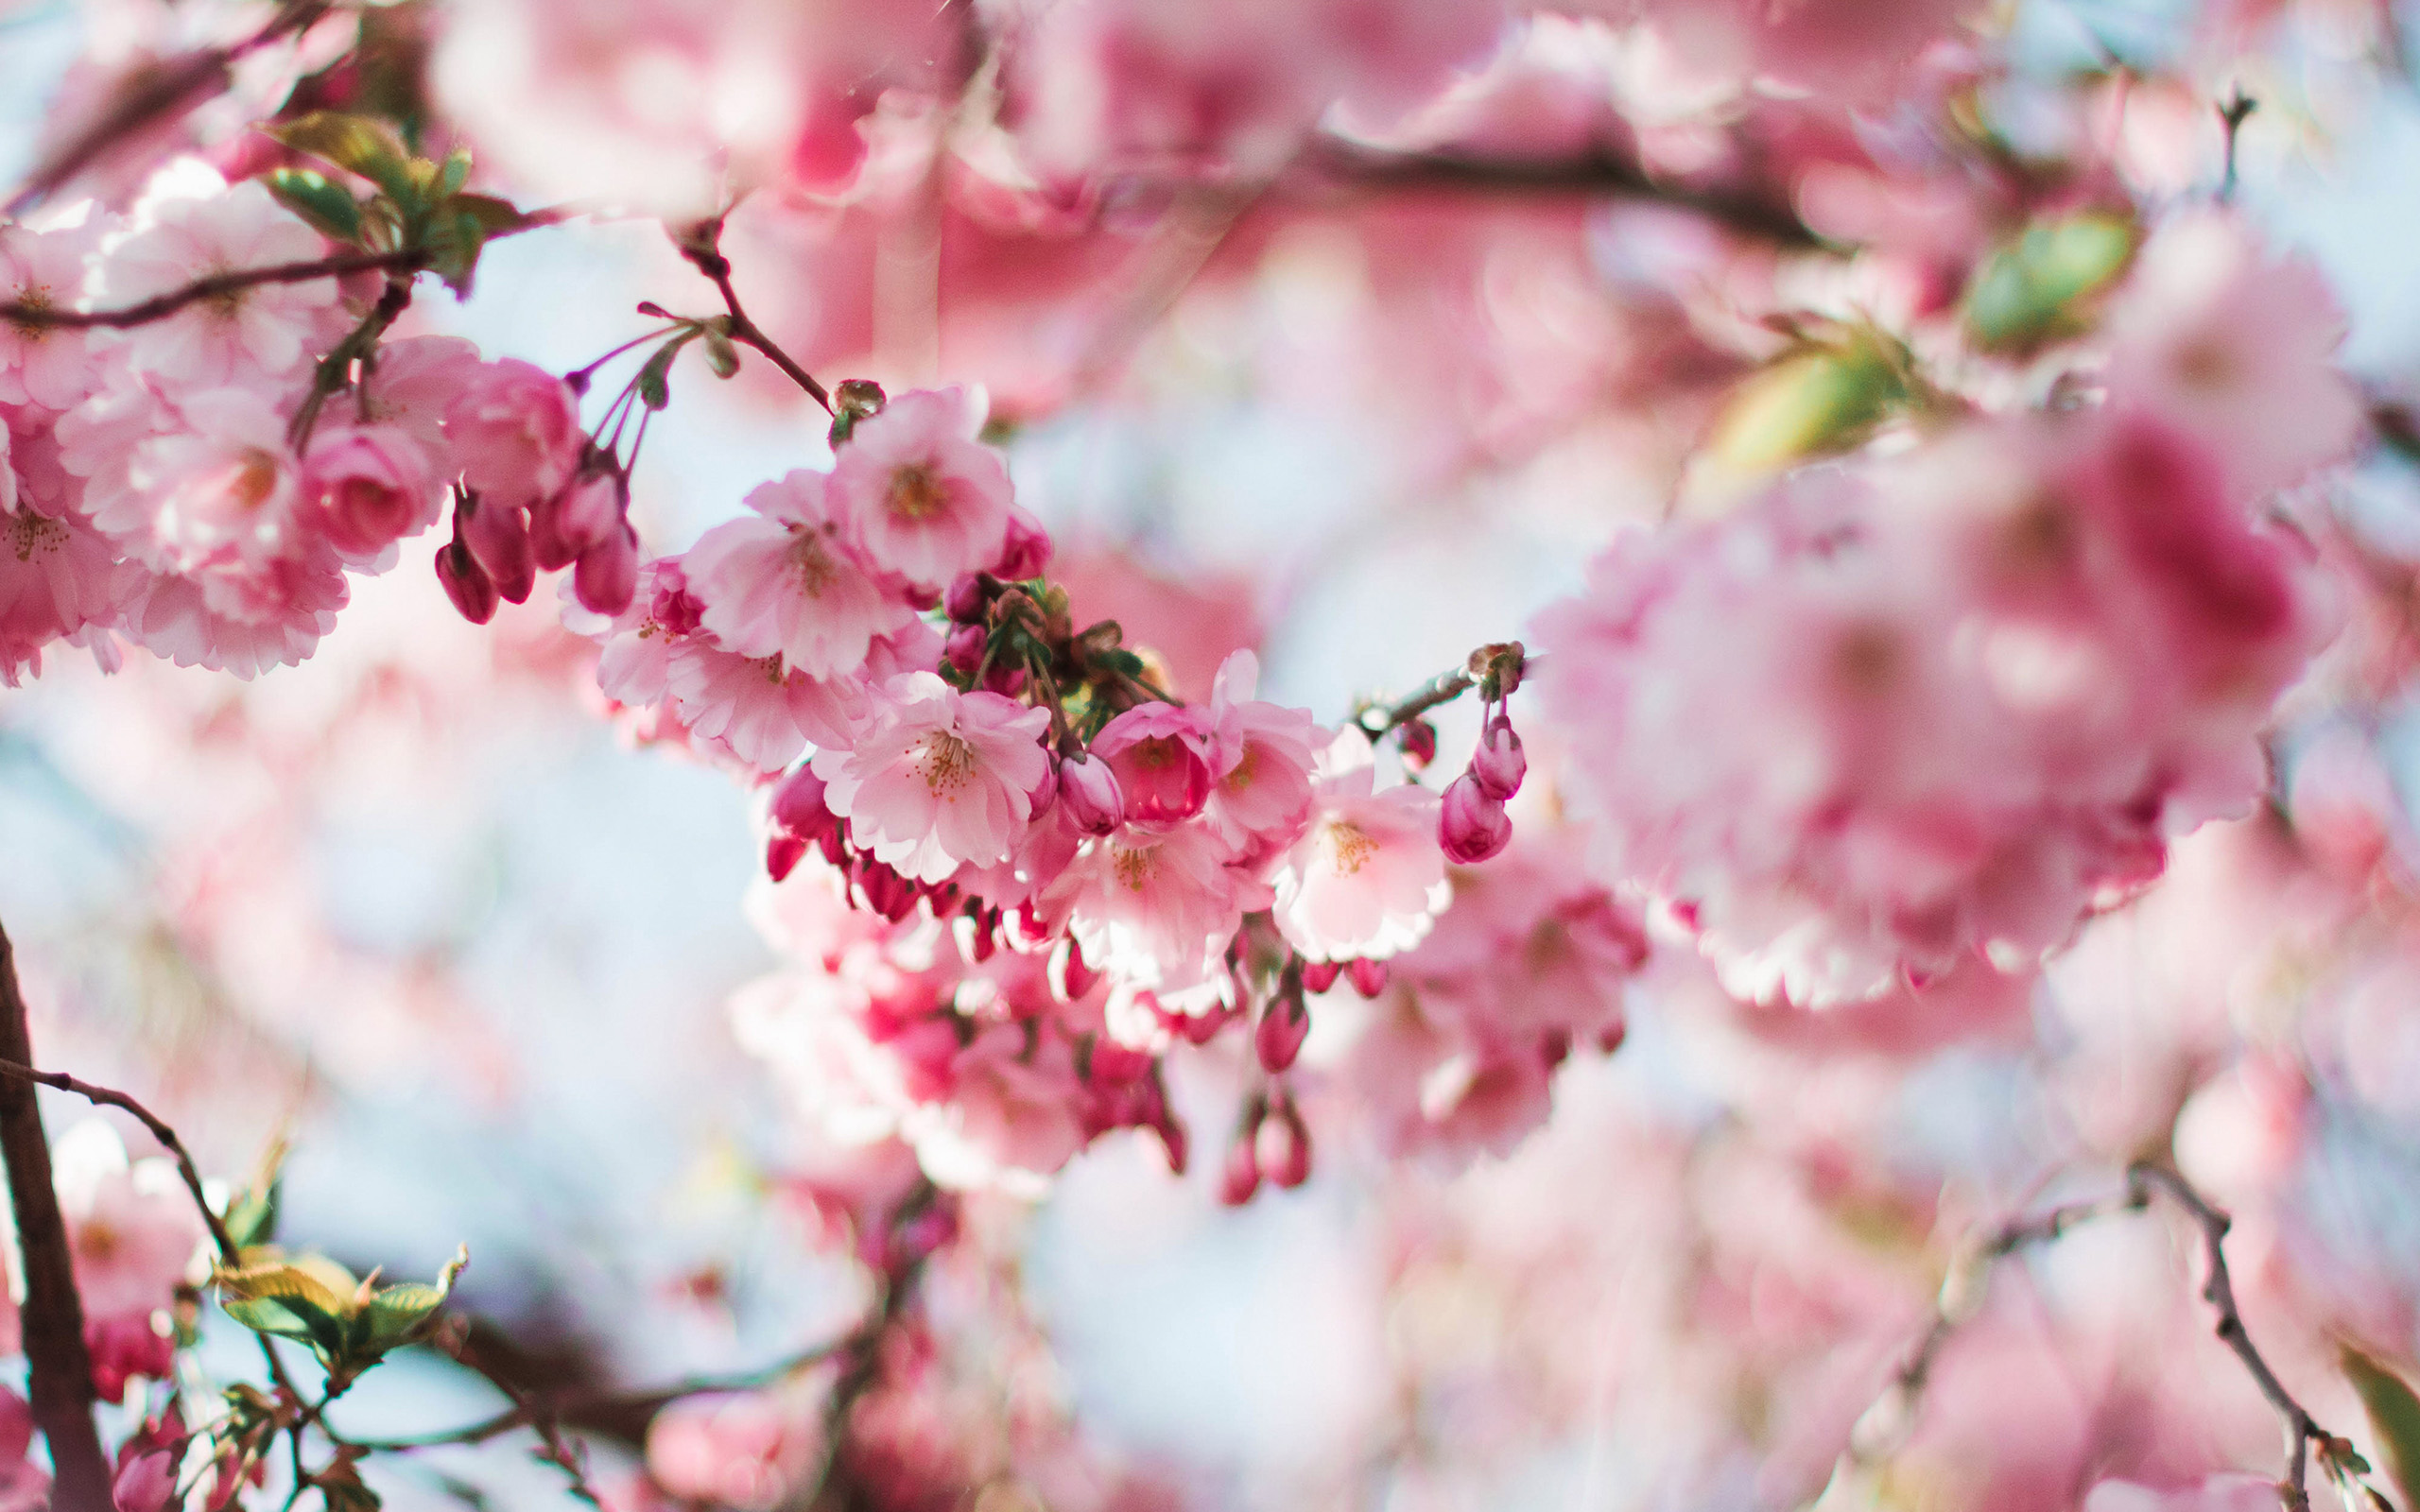 nx72-spring-cherry-blossom-tree-flower-pink-nature-wallpaper